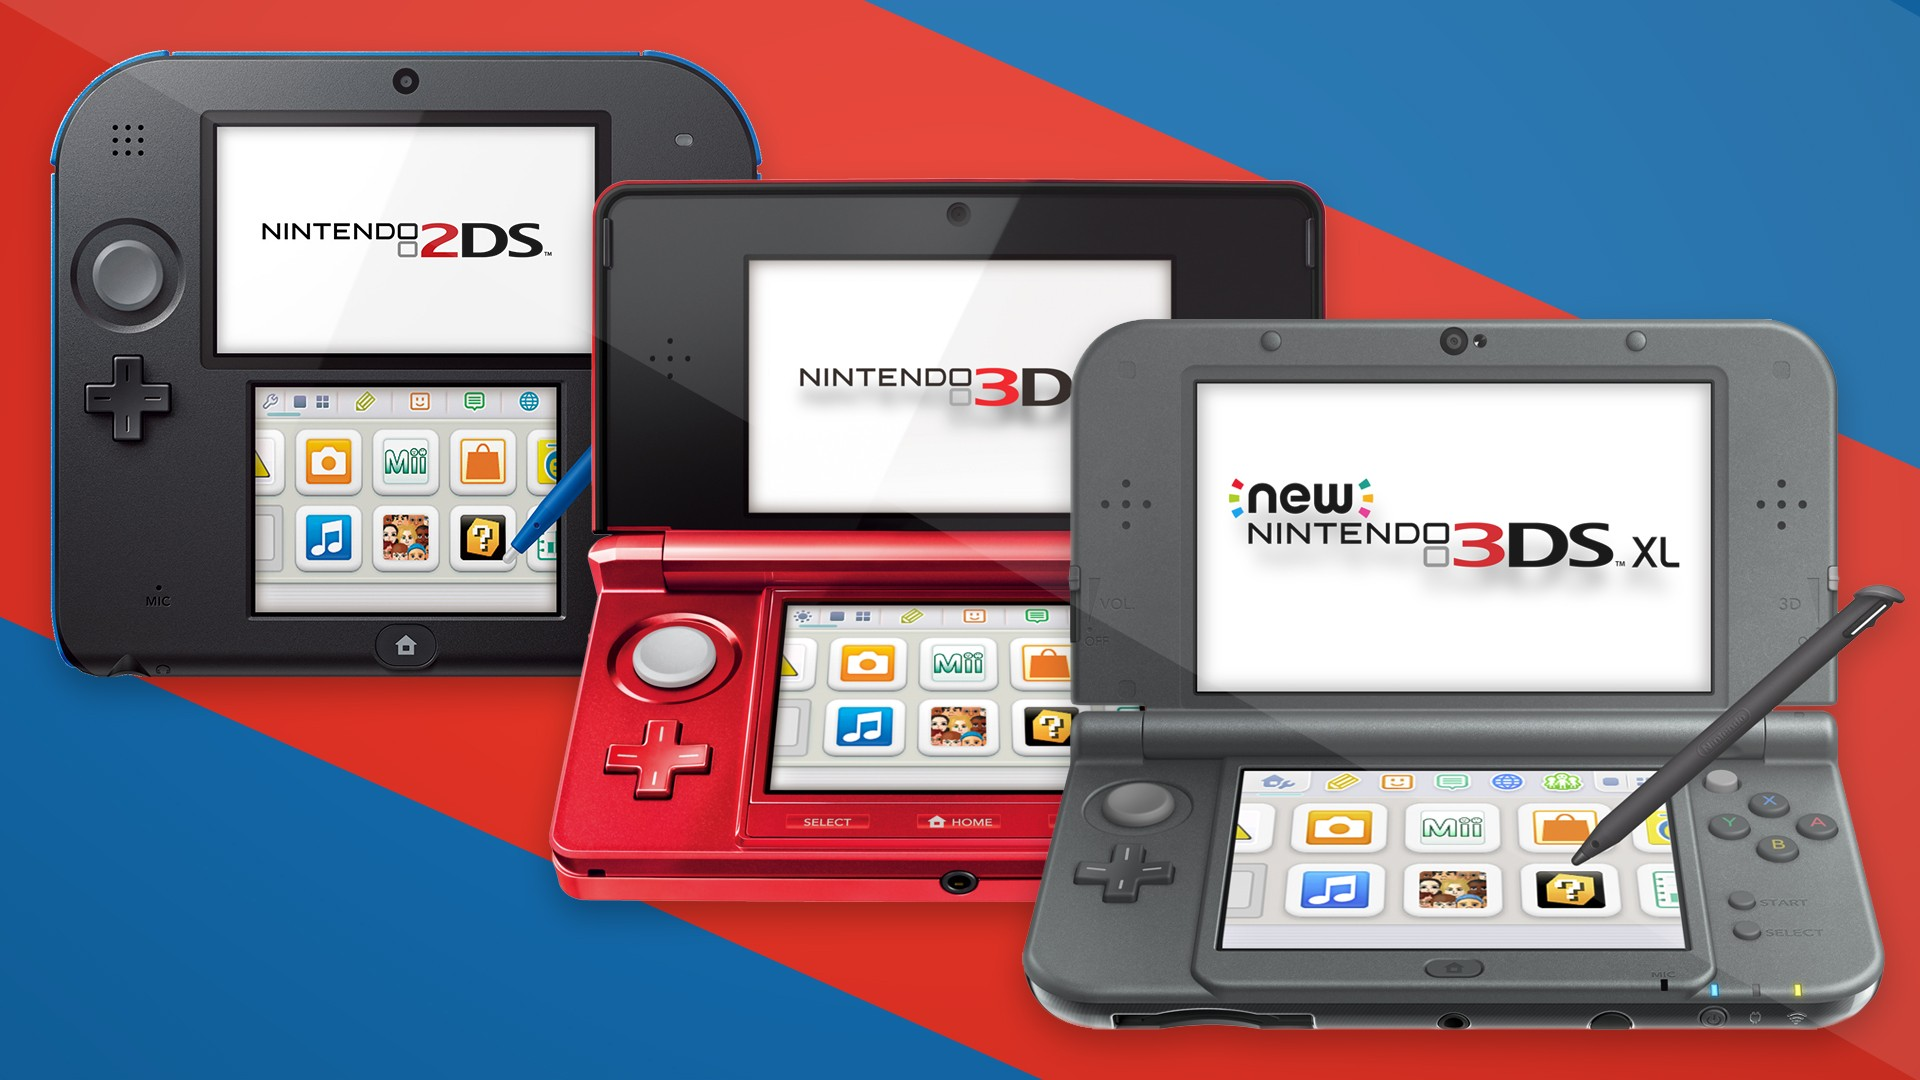 Nintendo 3ds family NintendOn